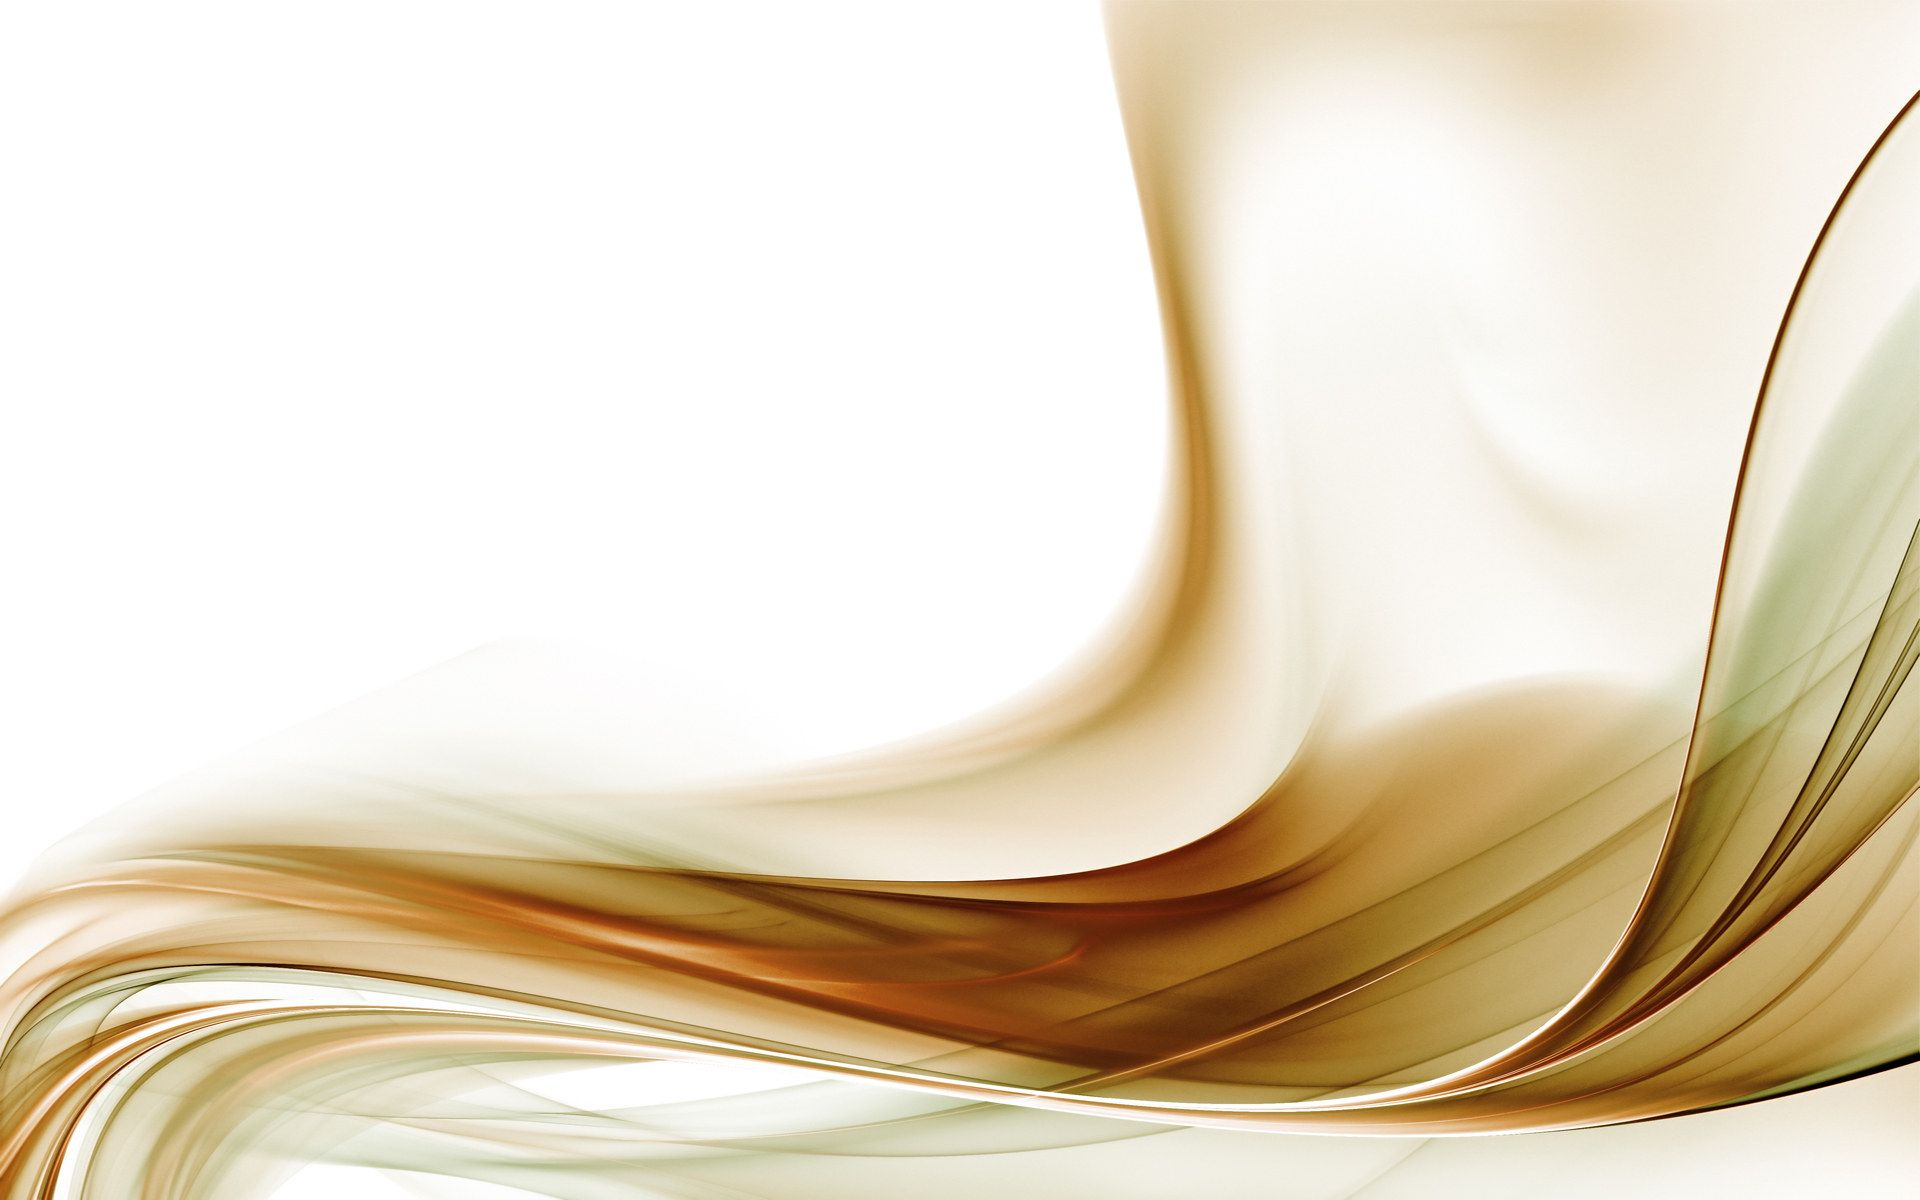 White And Gold Abstract Background Gold Abstract Wallpaper Gold Wallpaper Hd Abstract Wallpaper